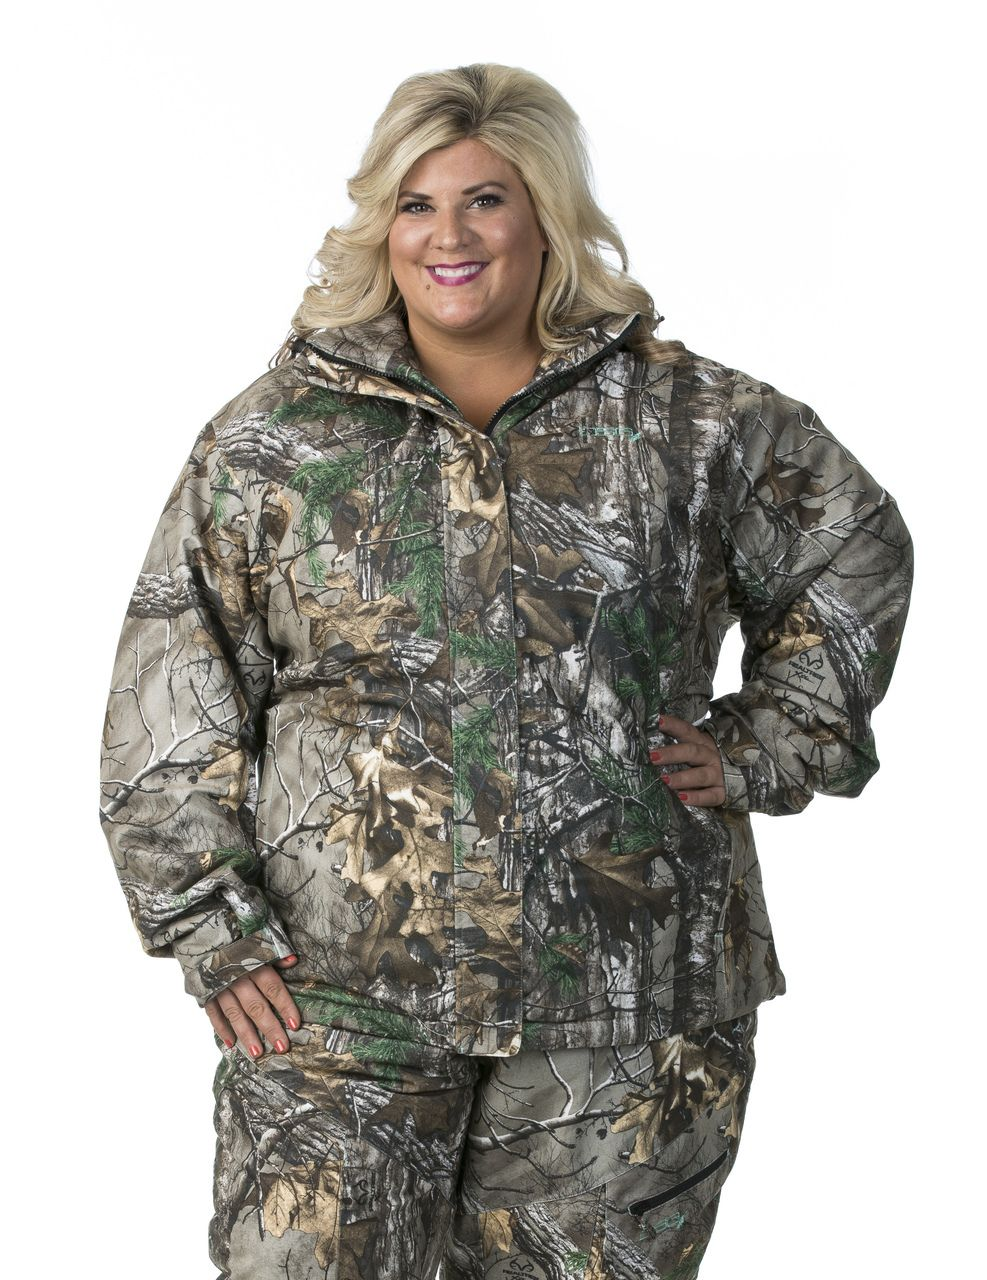 4dd550241a7 Struggle to find plus size Hunting apparel for women   Not any longer! DSG  Outerwear offers up to size 5XL! Addie Hunting Jacket in Realtree Xtra Camo